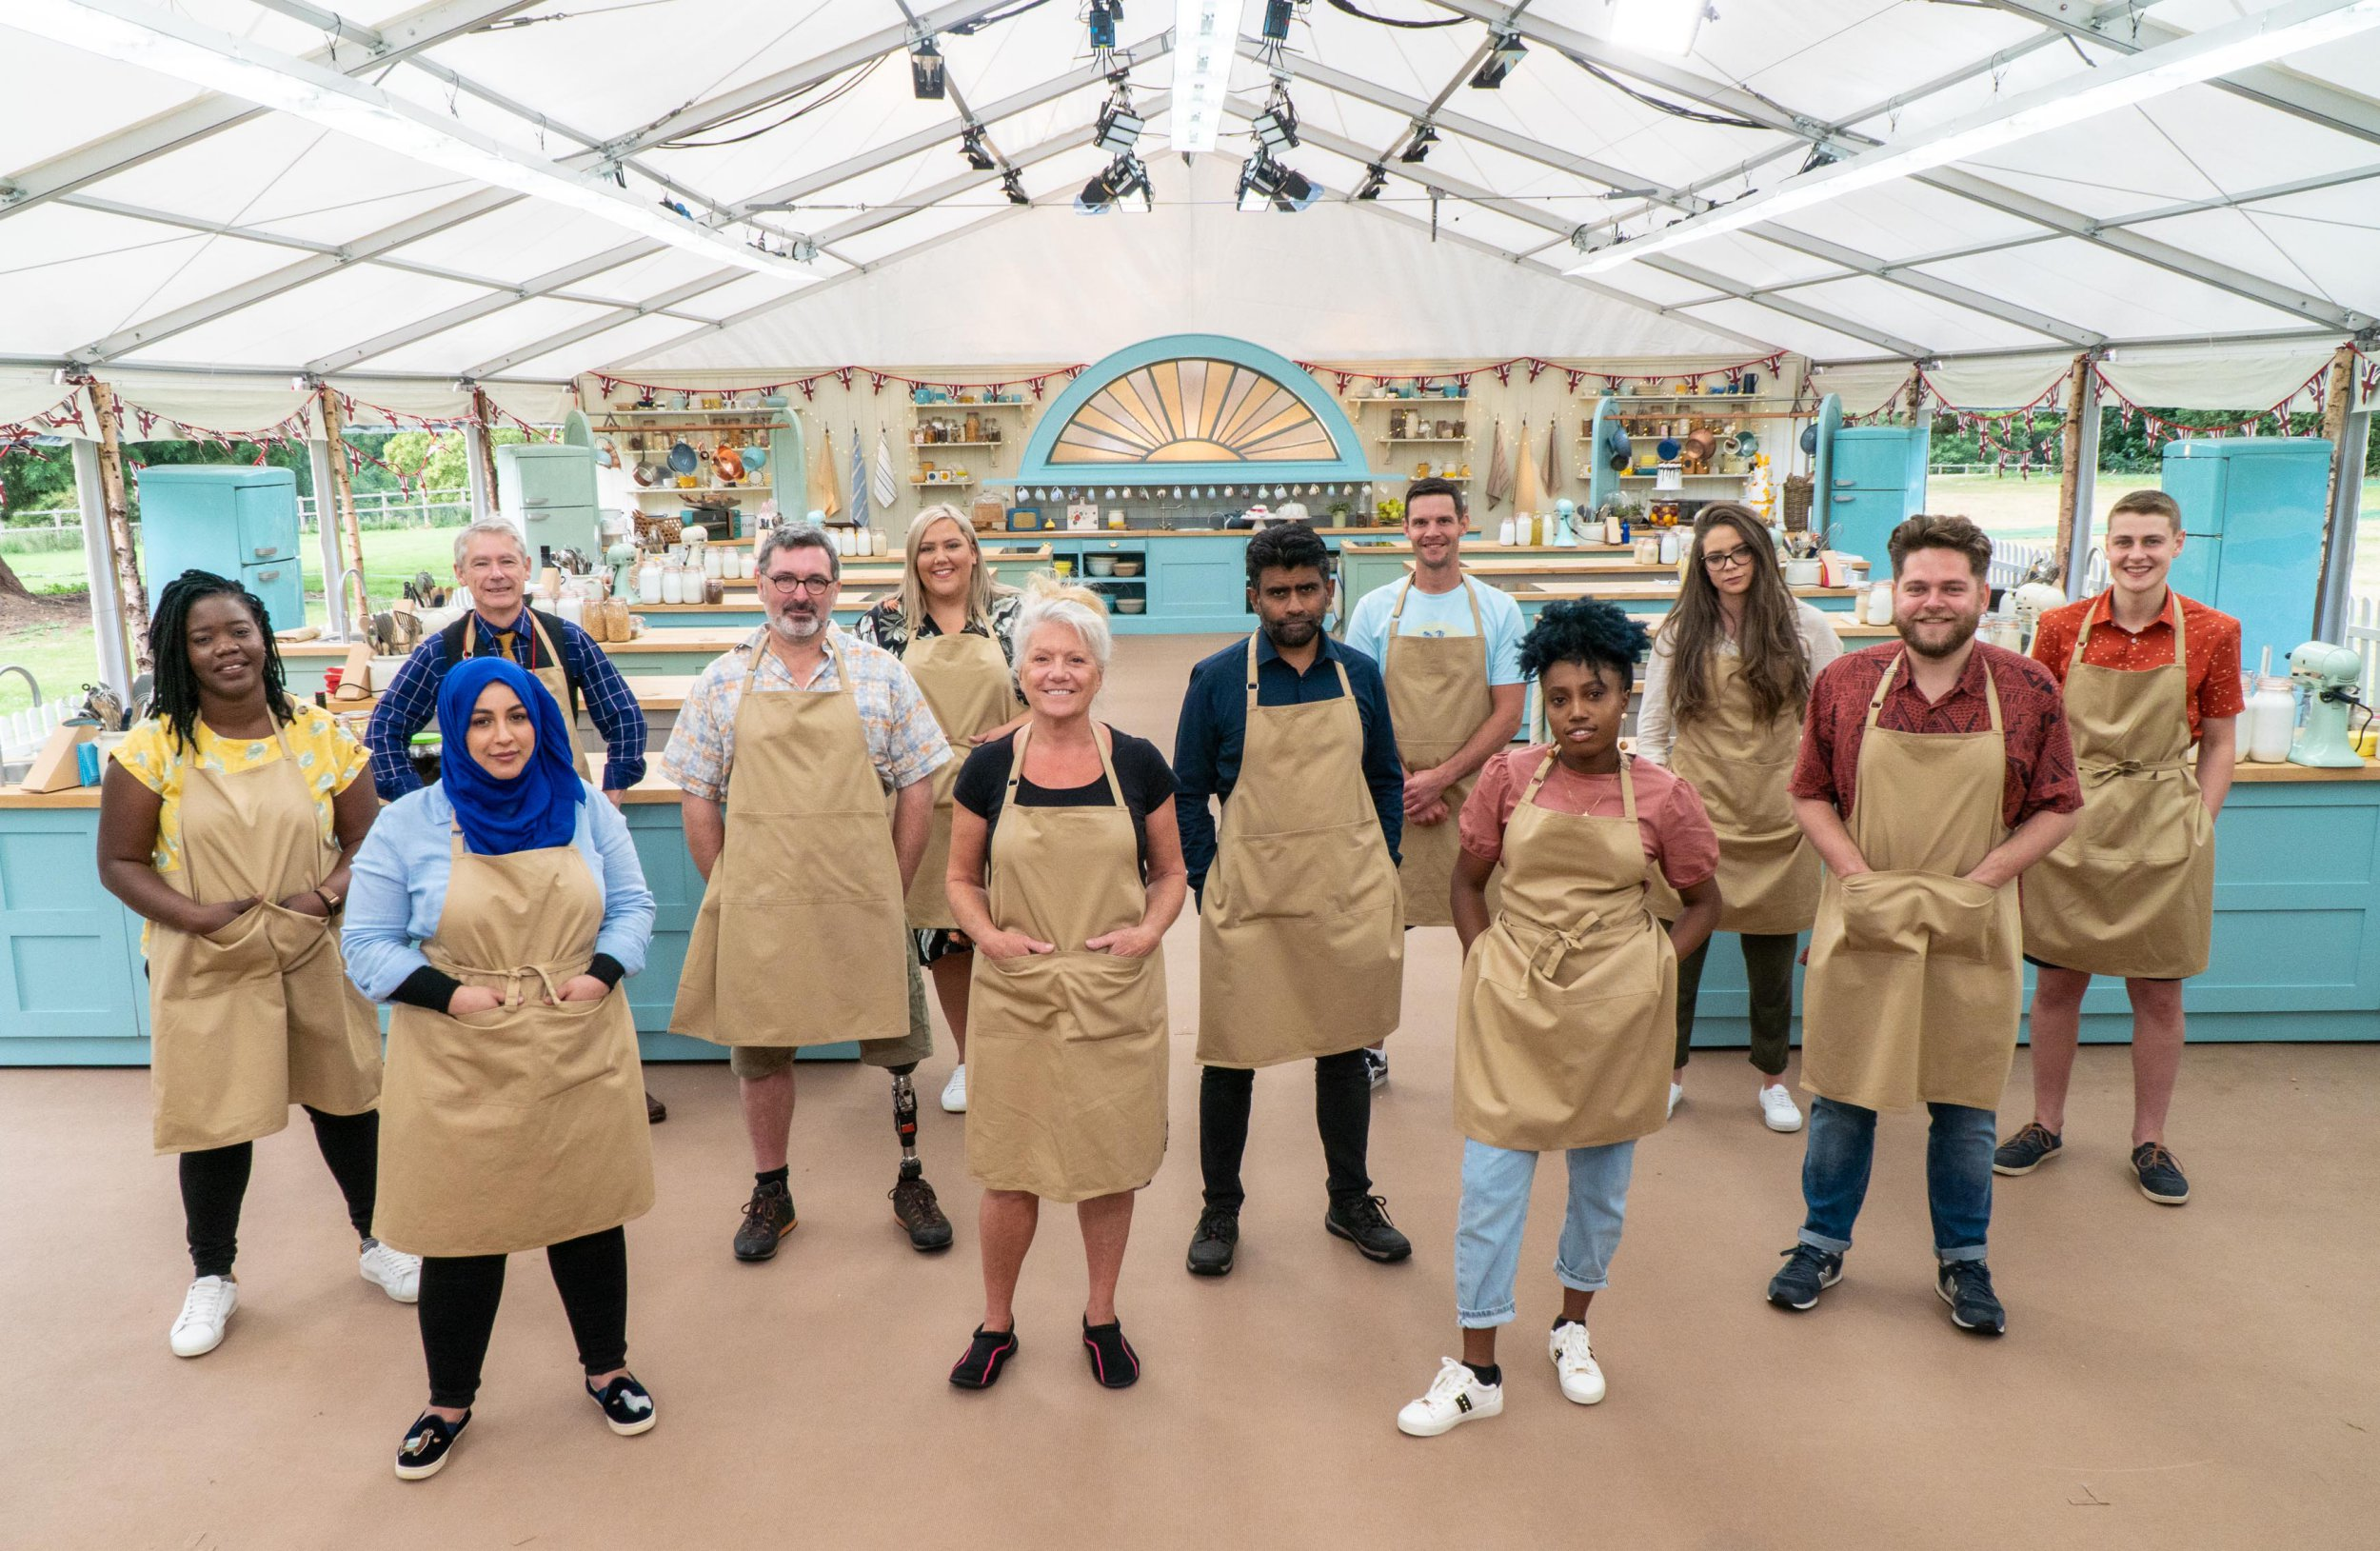 A lineup of the new contestants of Bake Off, 2020 inside the notorious tent